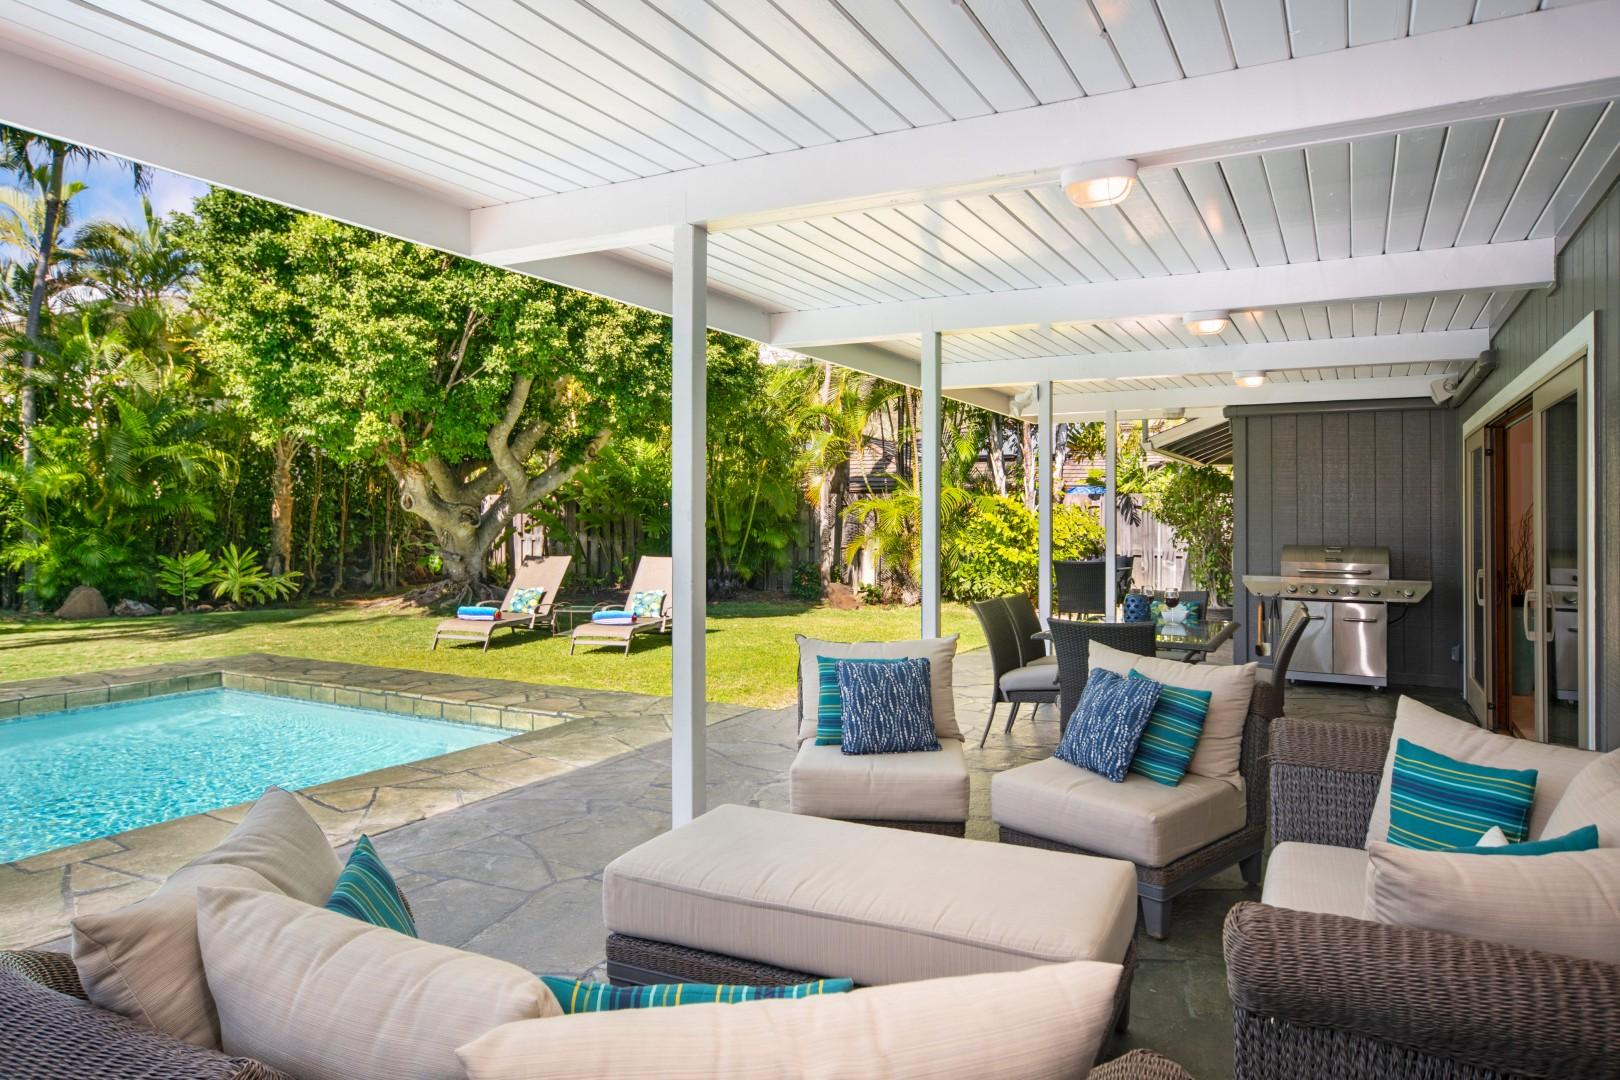 Enjoy the private pool while barbecuing!